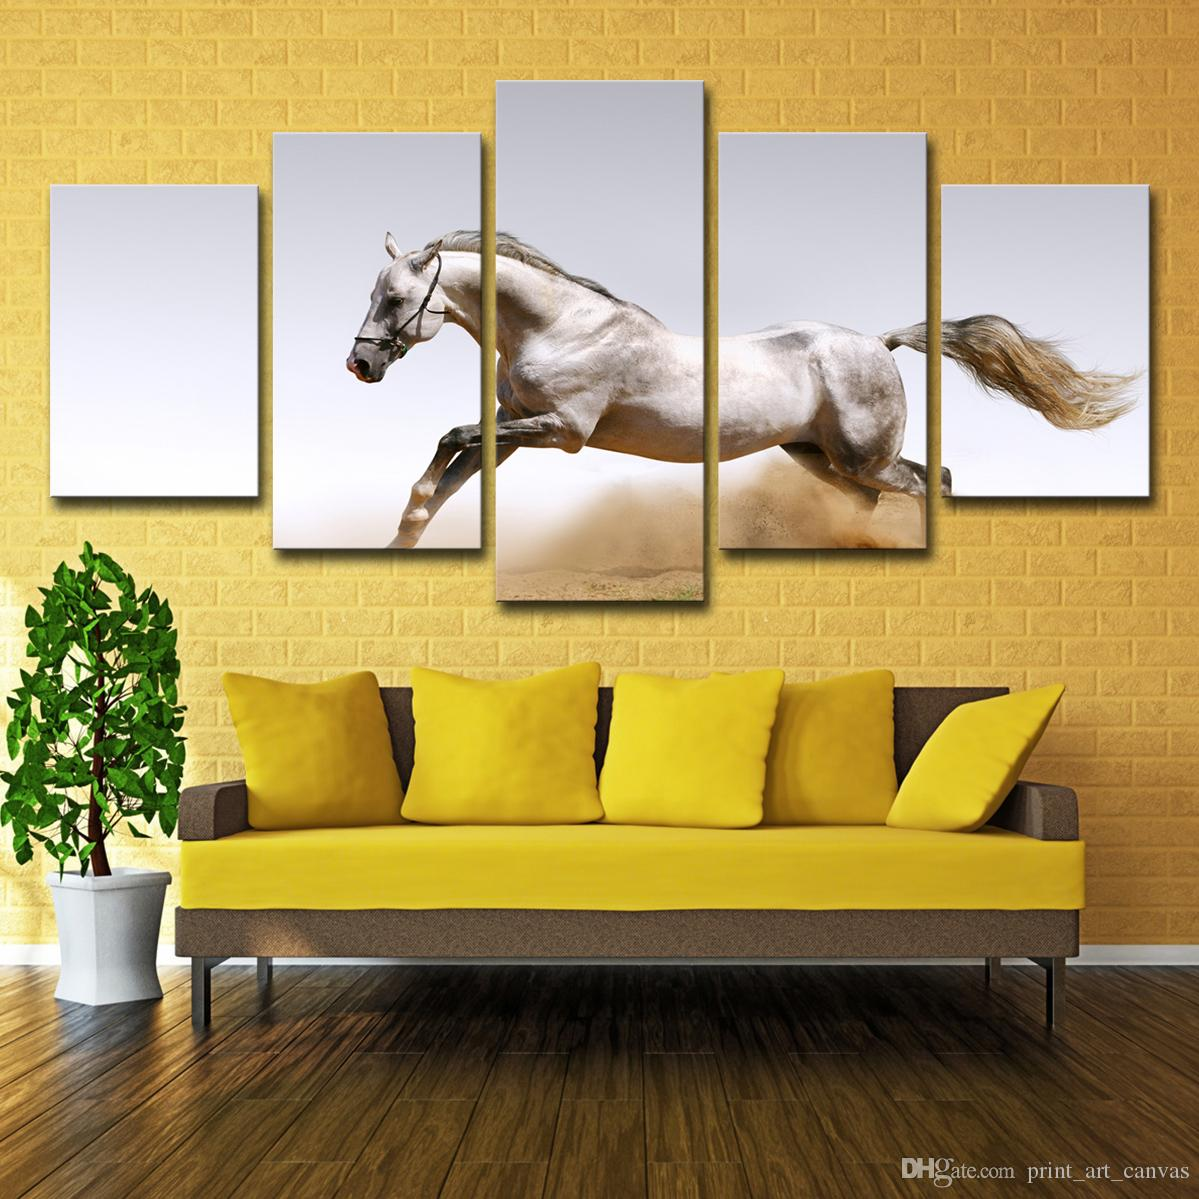 Abstract Painting Photo Wall Pictures For Living Room Decorative Painting 5 Panel The White Horse HD Poster Canvas Painting